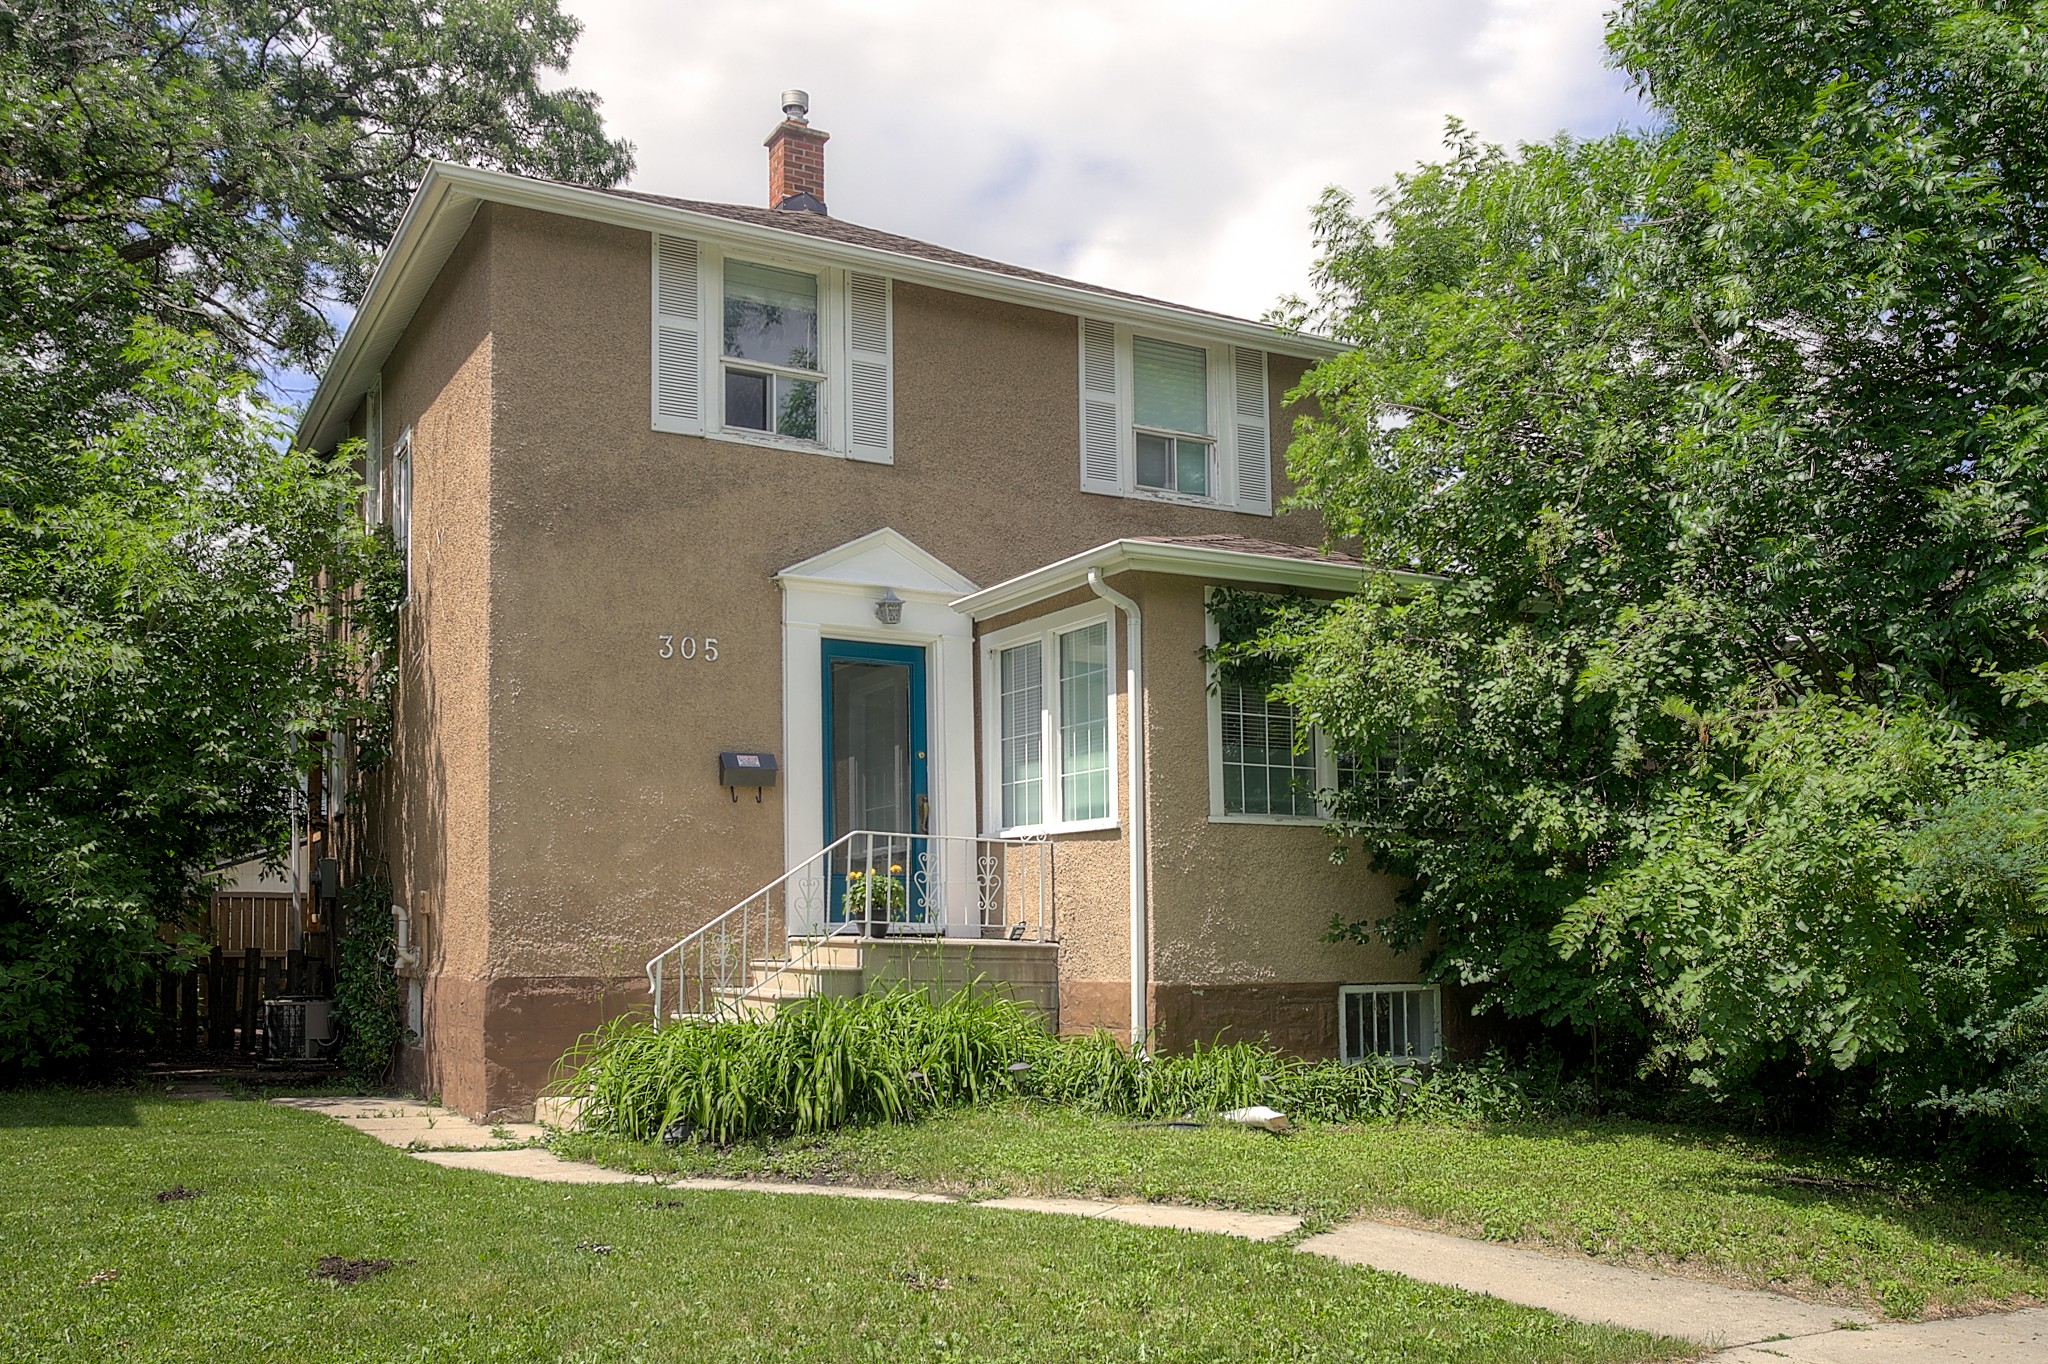 FEATURED LISTING: 305 Beaverbrook Street Winnipeg